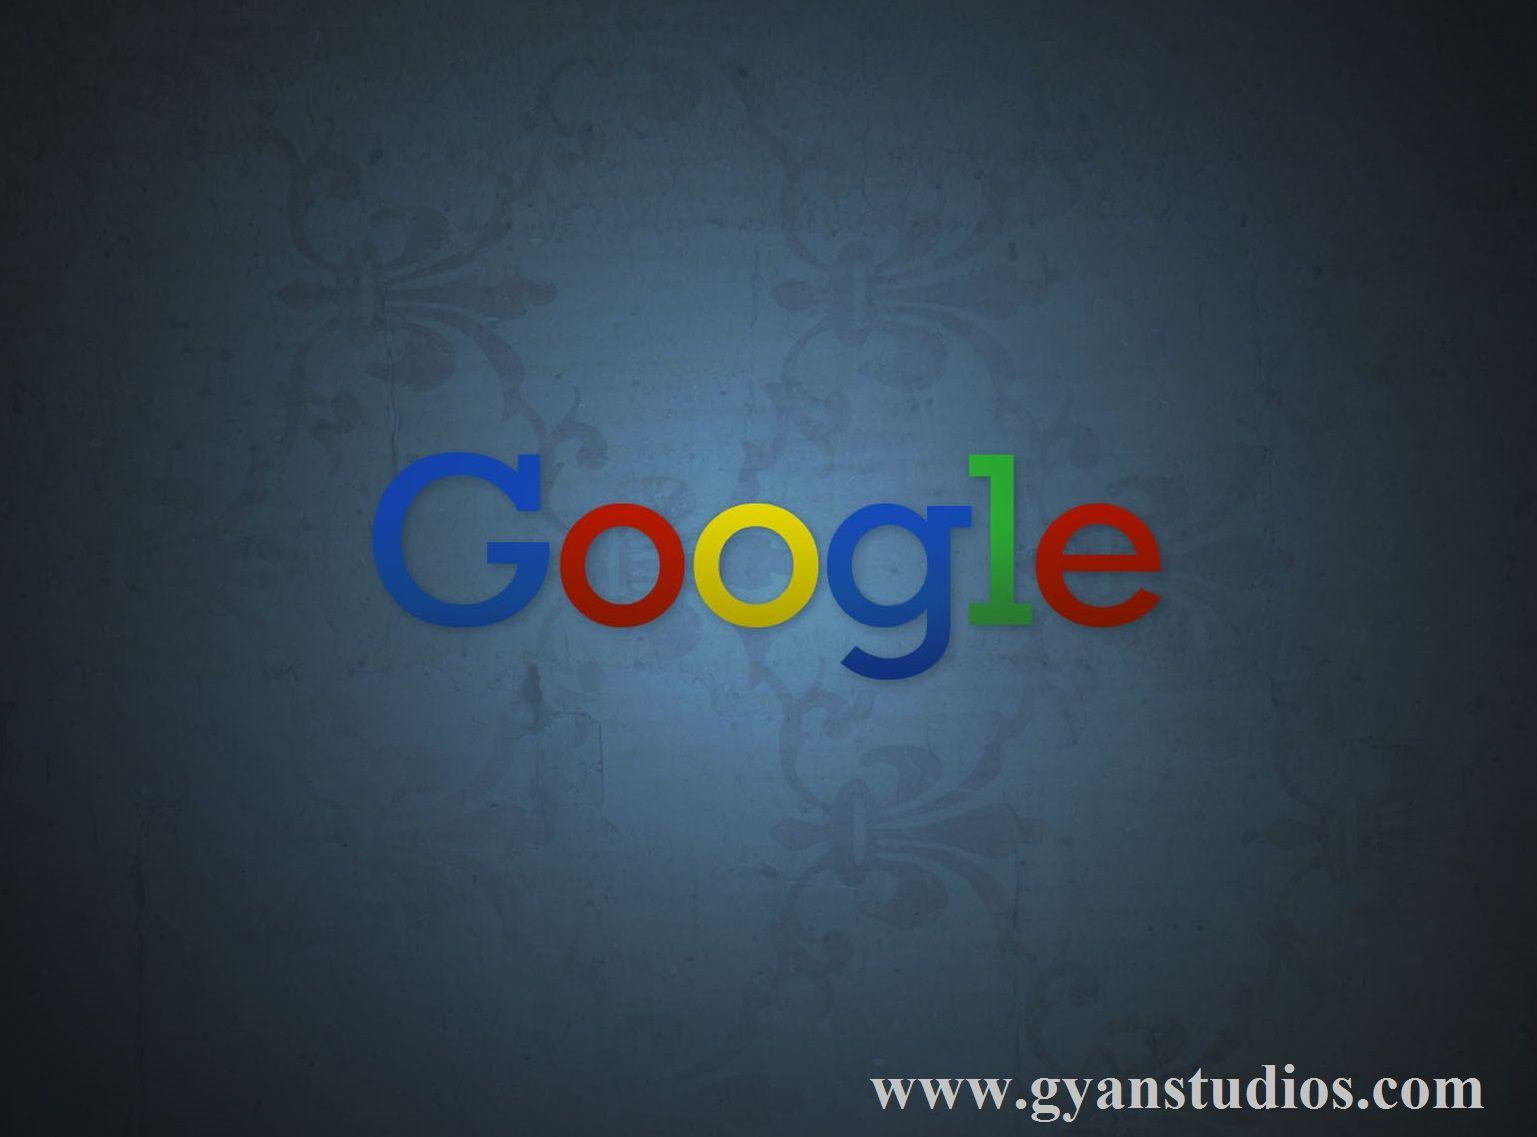 Google was founded in 1998 by Larry Page and Sergey Brin. Both are ...